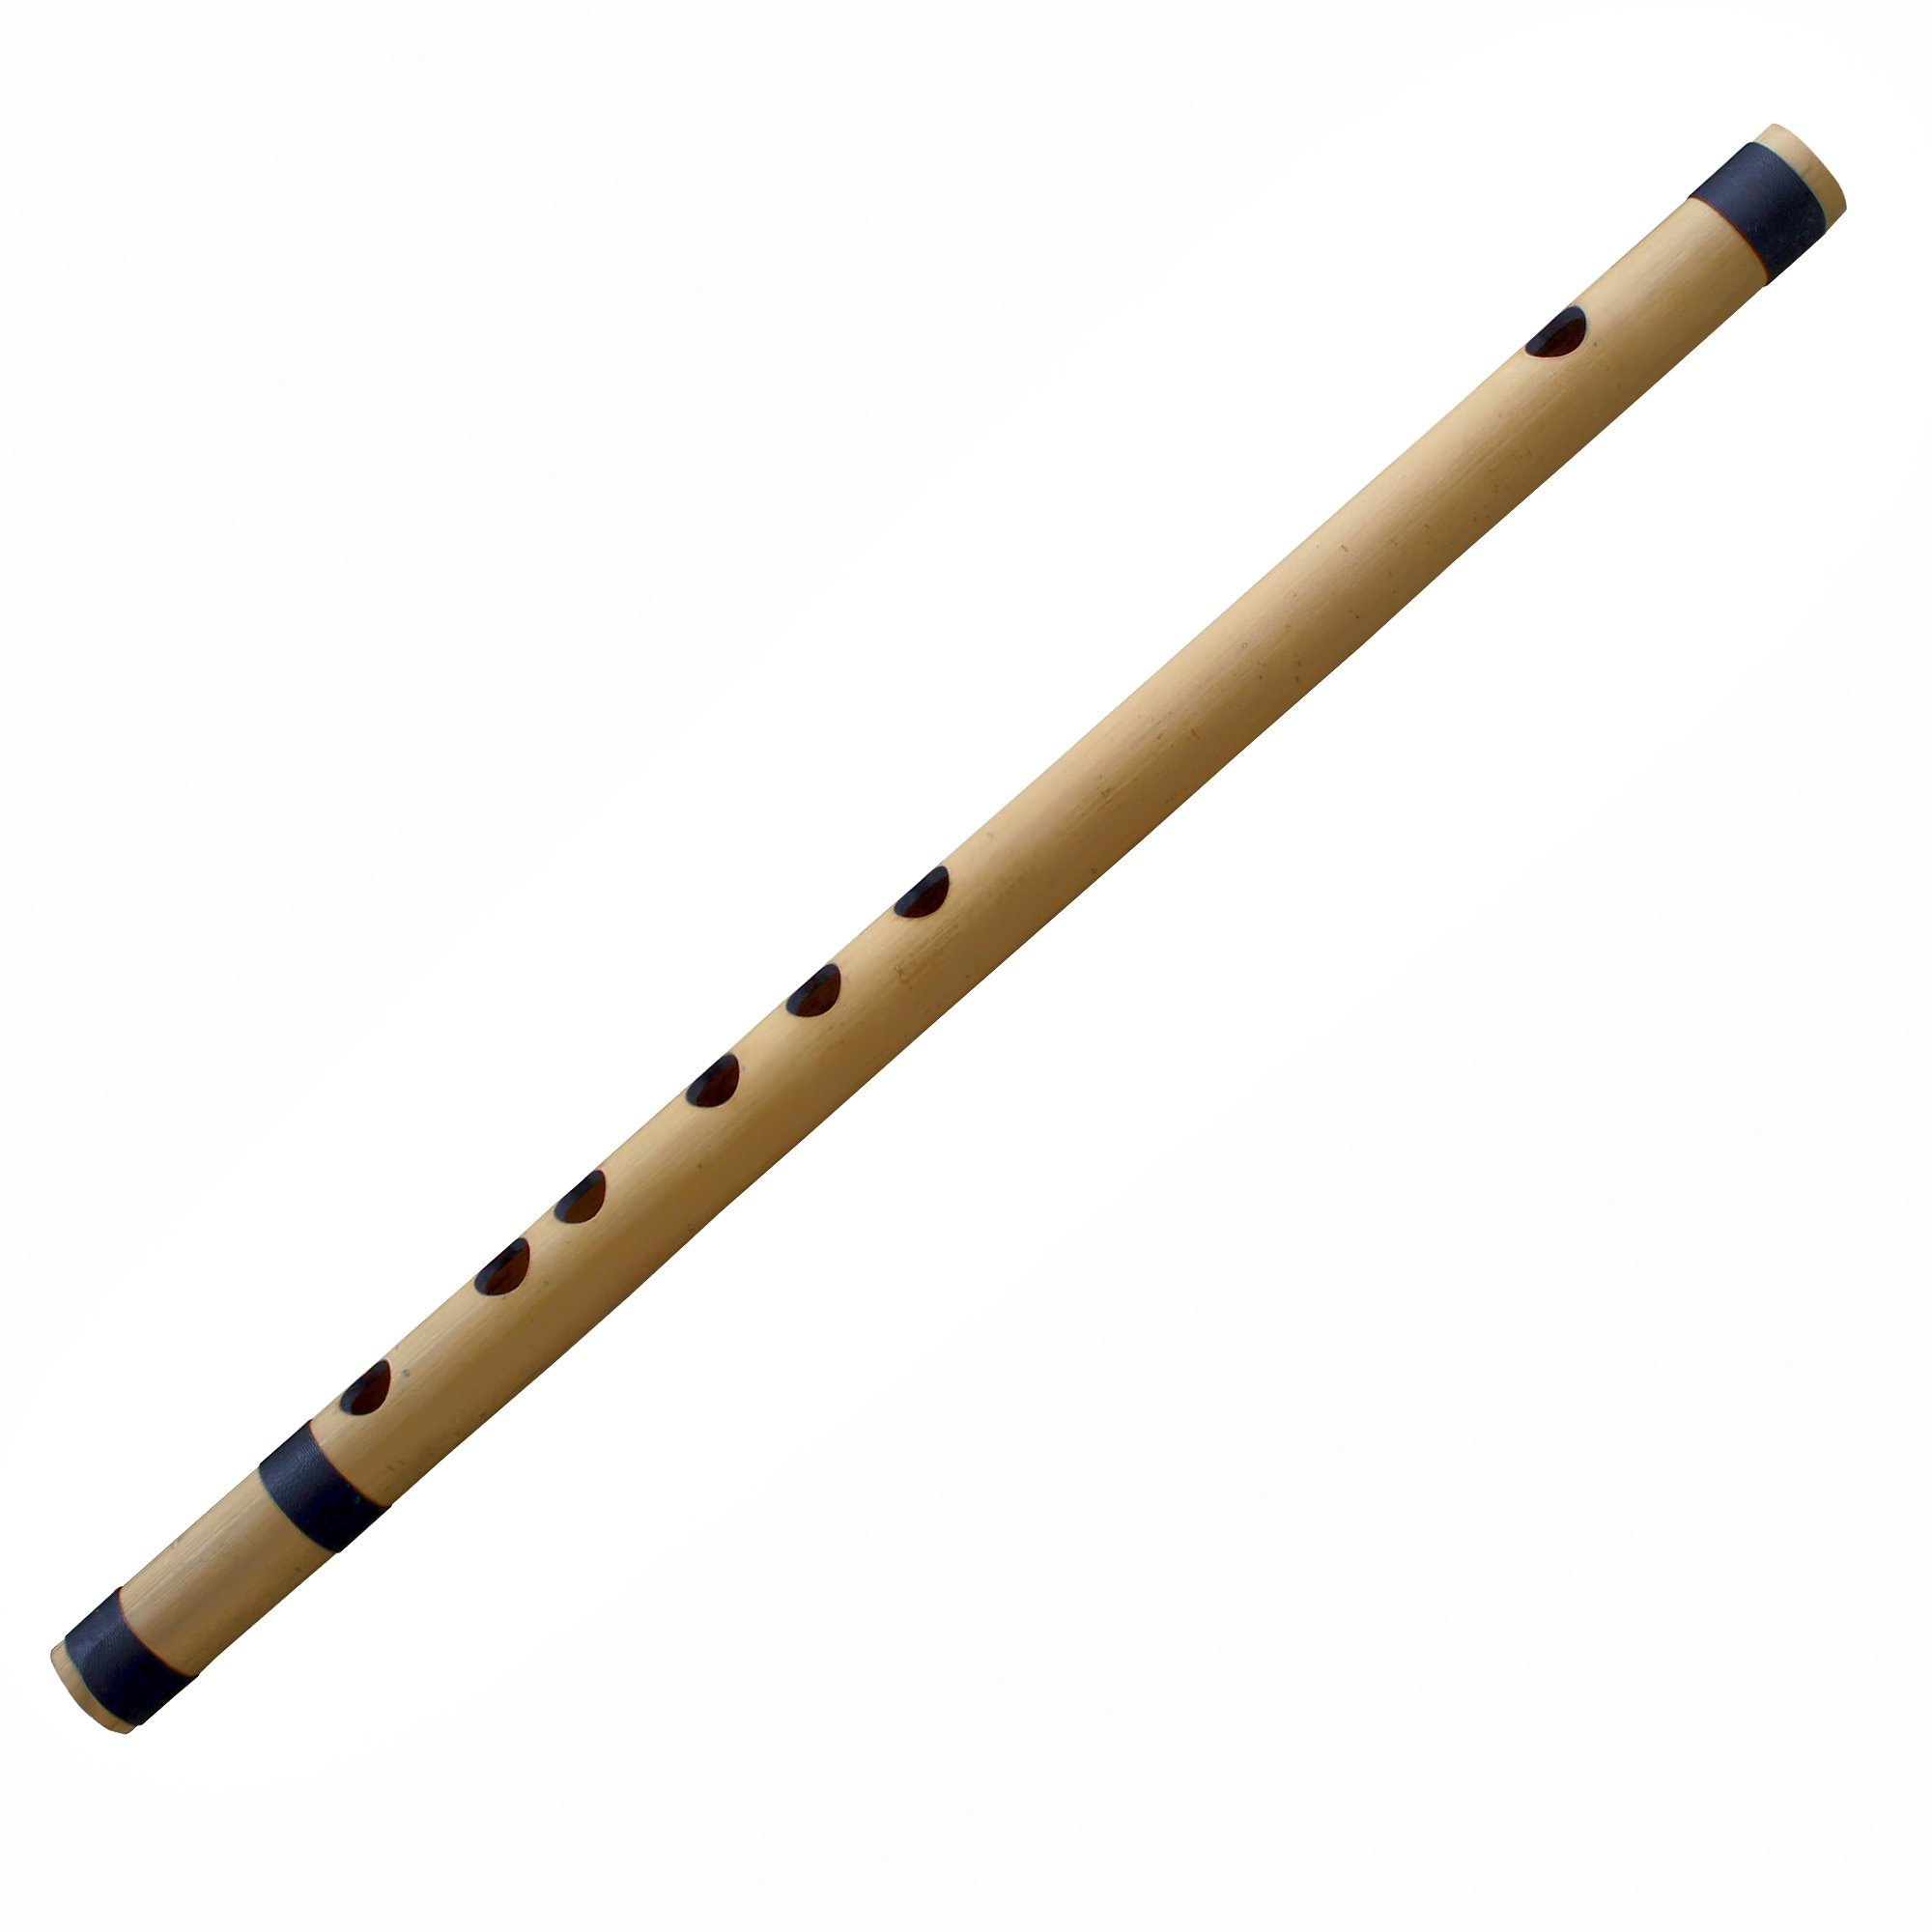 Transverse Flute Professional Bansuri Bamboo, Key-E, 15 Inches Long - Traditional Handmade Indian Musical Instrument